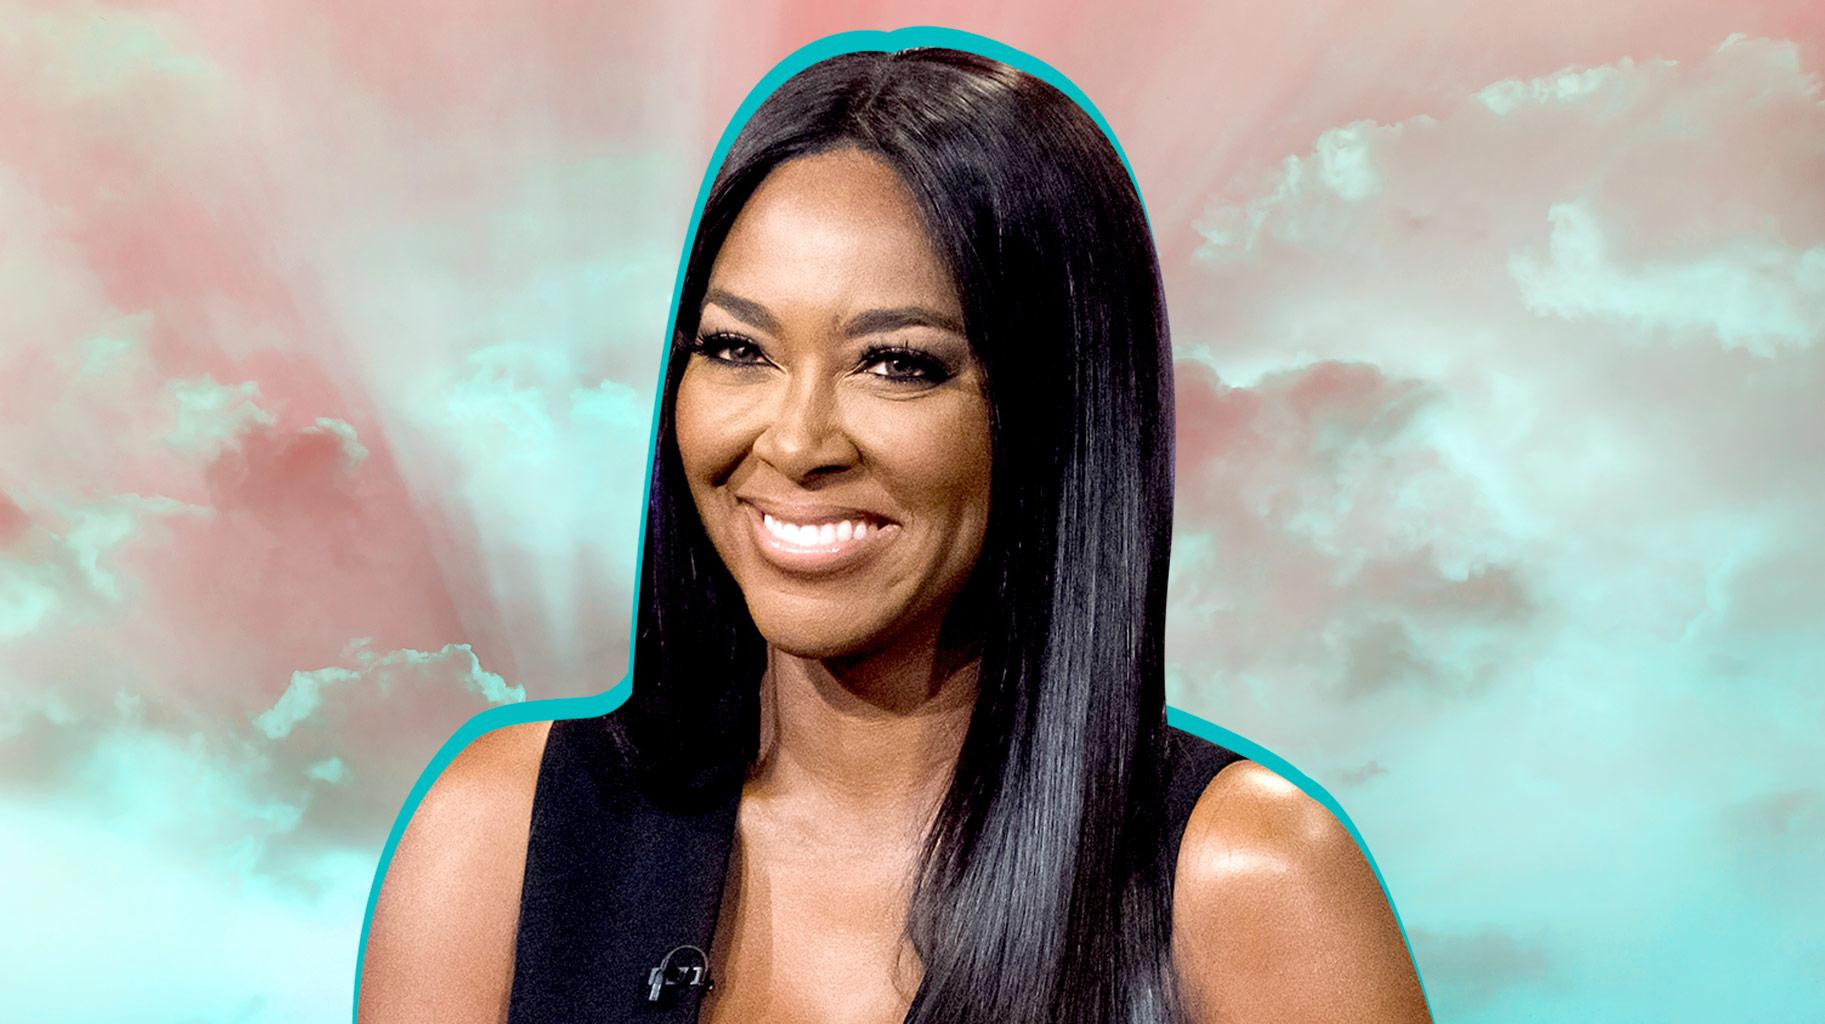 Kenya Moore Shares A New Video With Baby Brooklyn Crawling Around For Her 'New Mission'